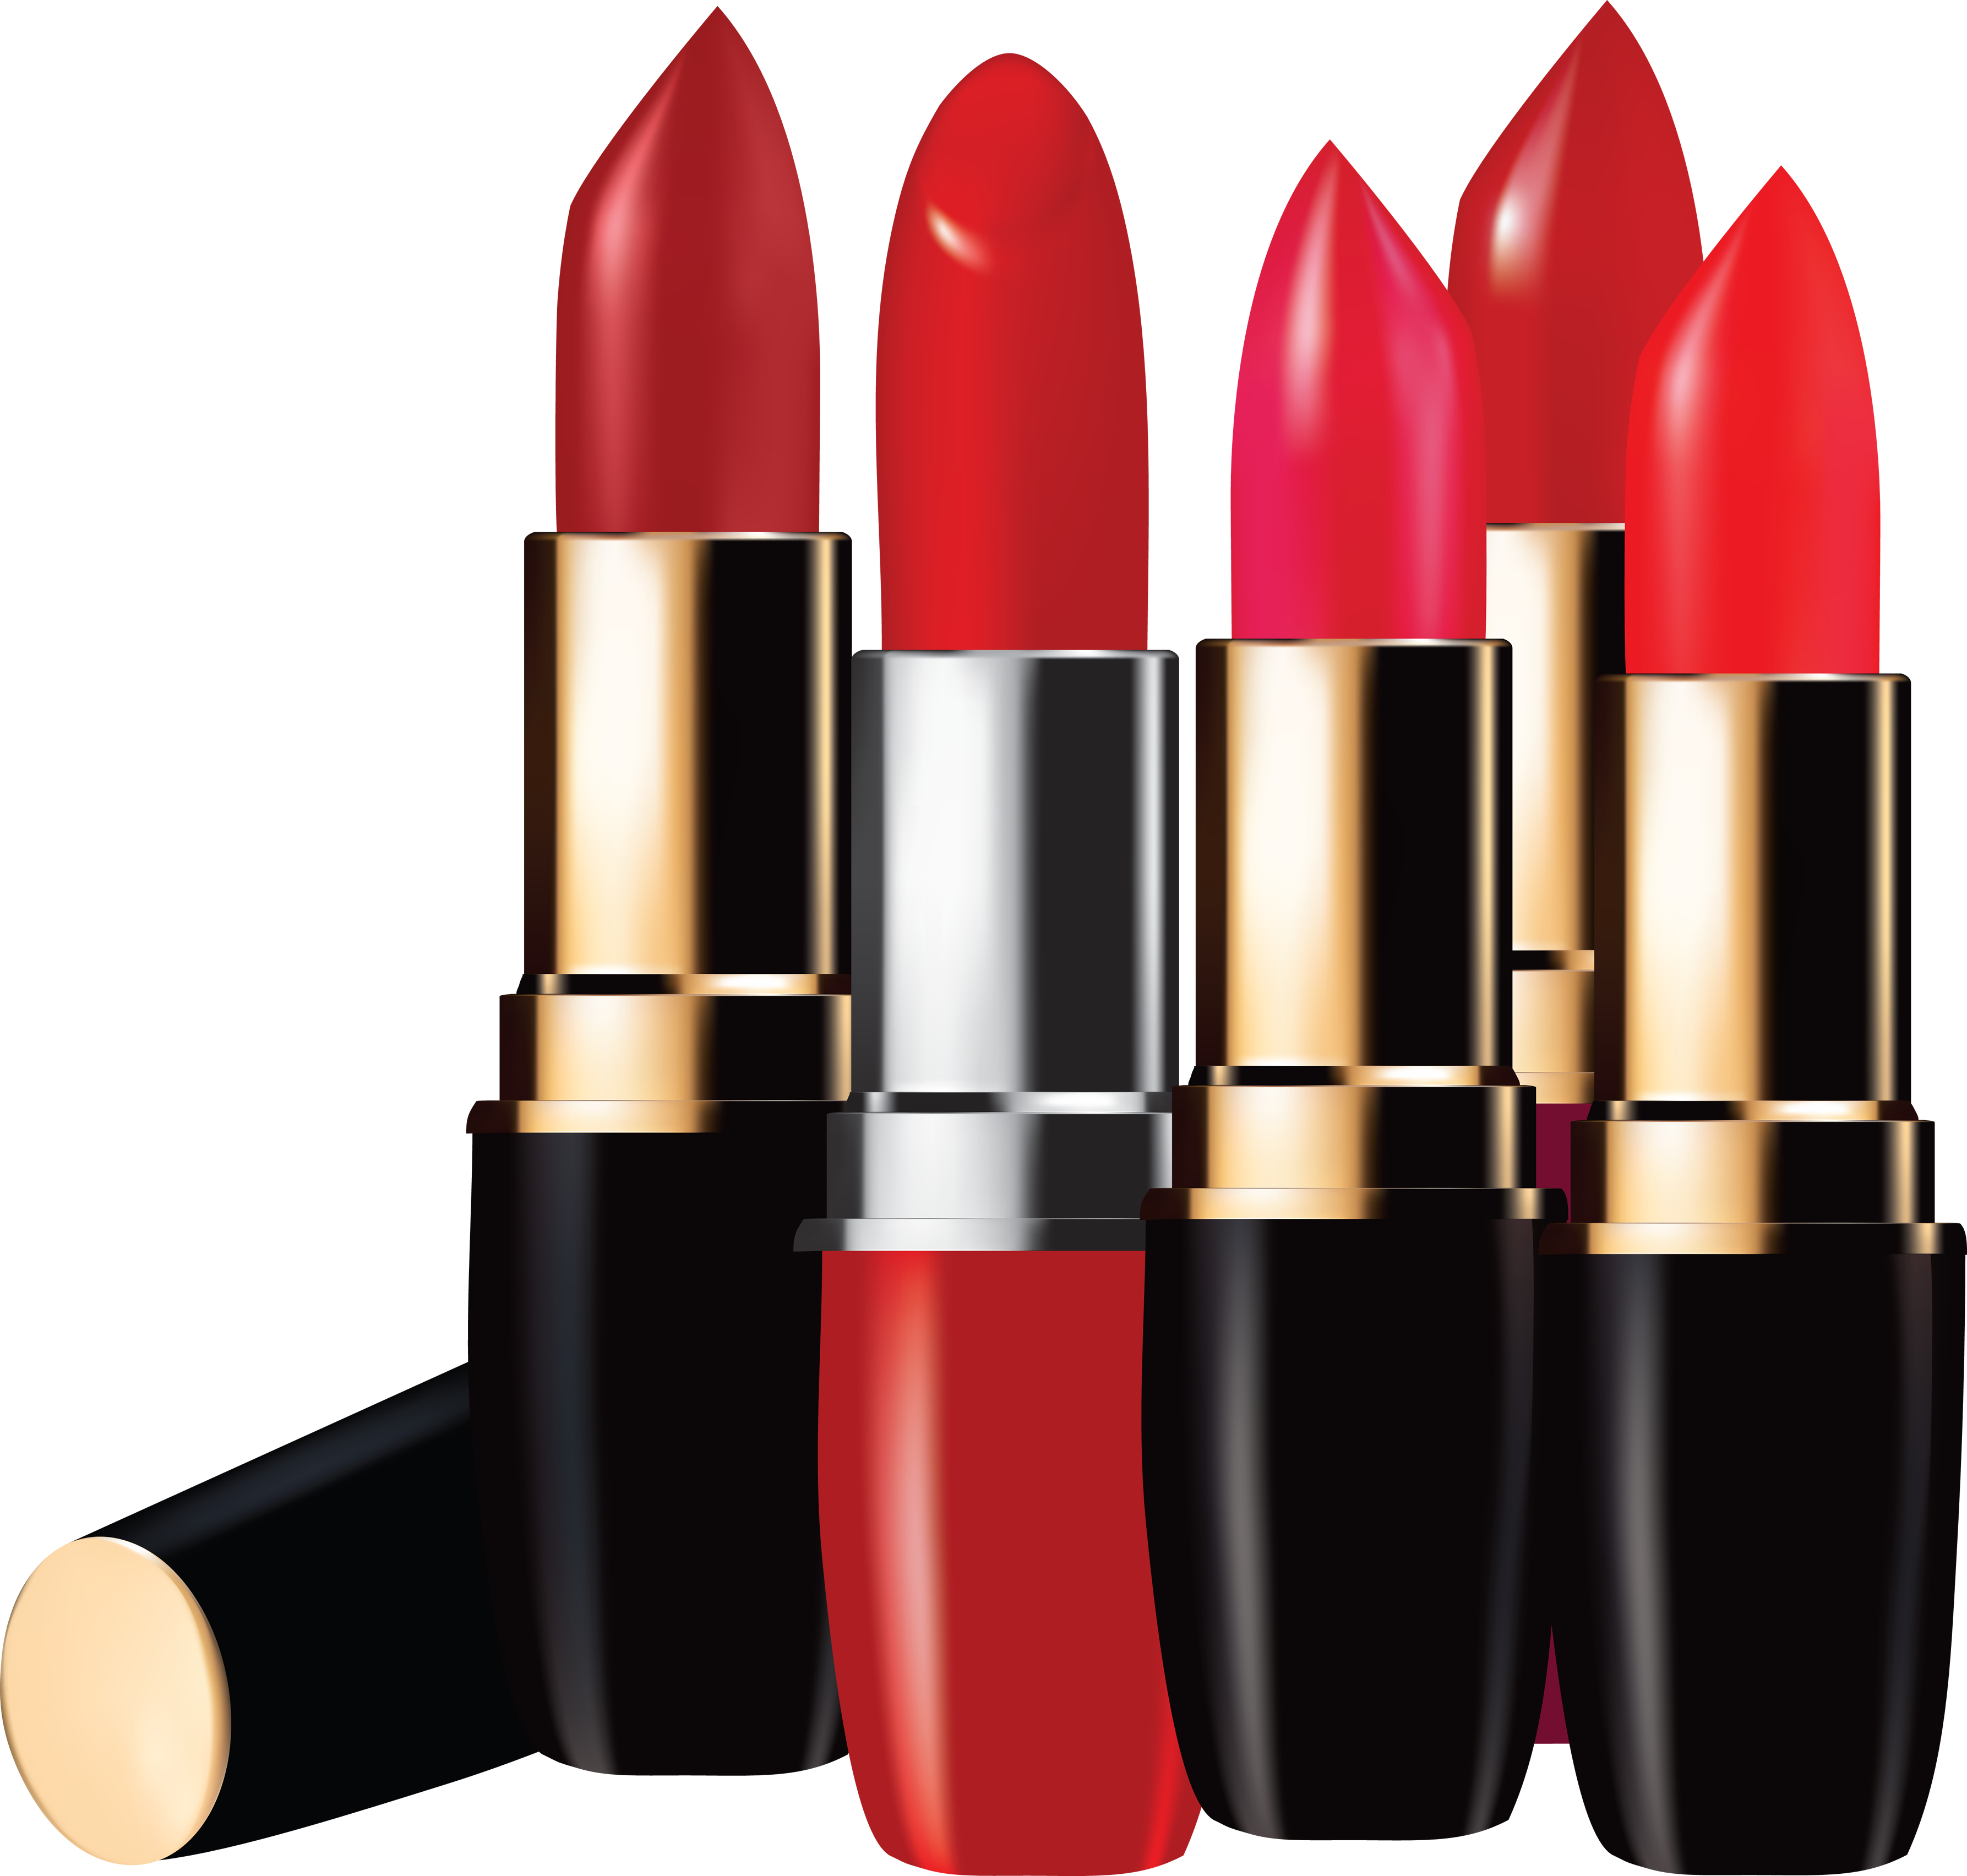 Outline clipart lipstick. Png images free download